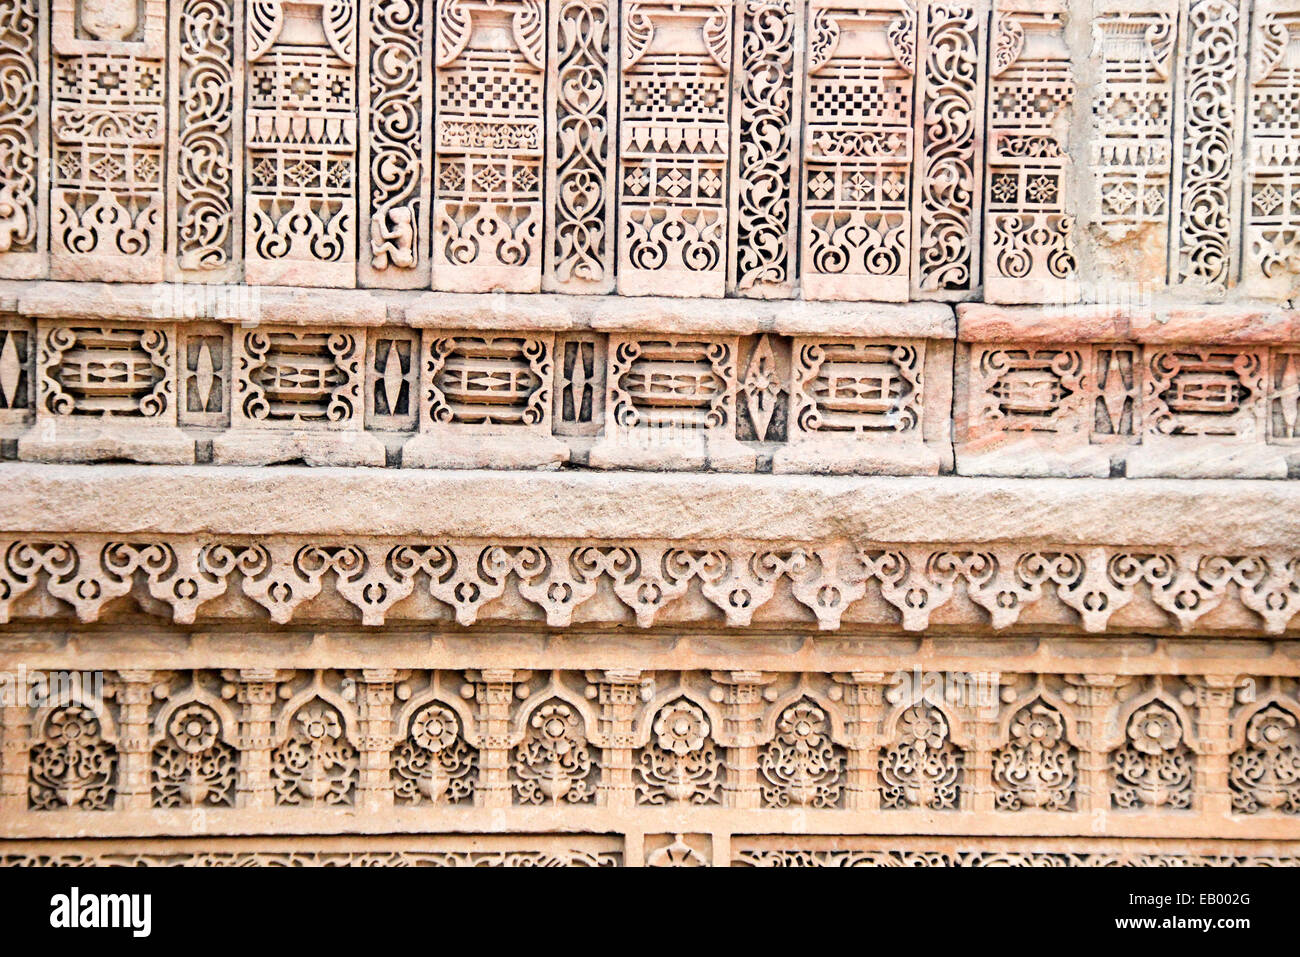 Beautiful, intricate, miniature carving on wall at Adalaj Step Well, Ahmedabad, Gujarat, India, Asia - Stock Image